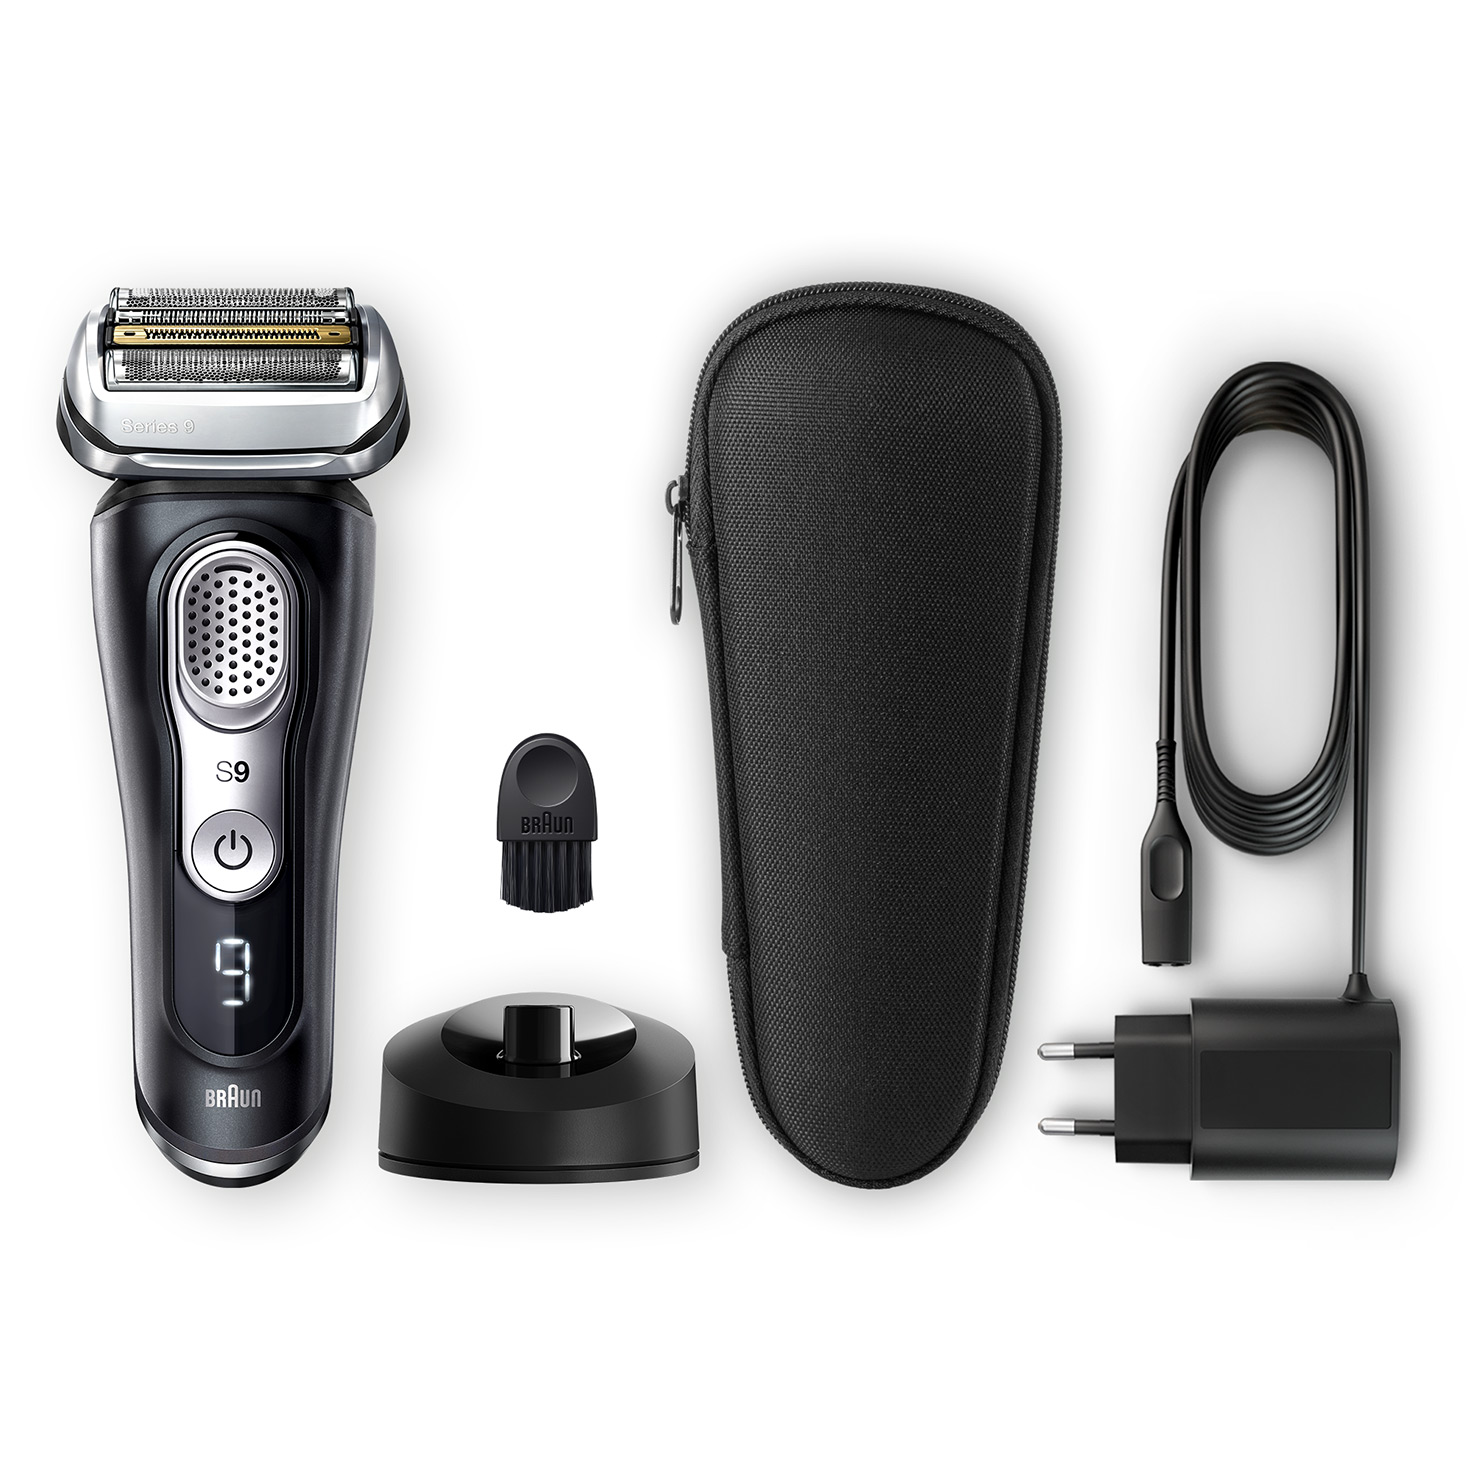 Series 9 9320s shaver - What´s in the box